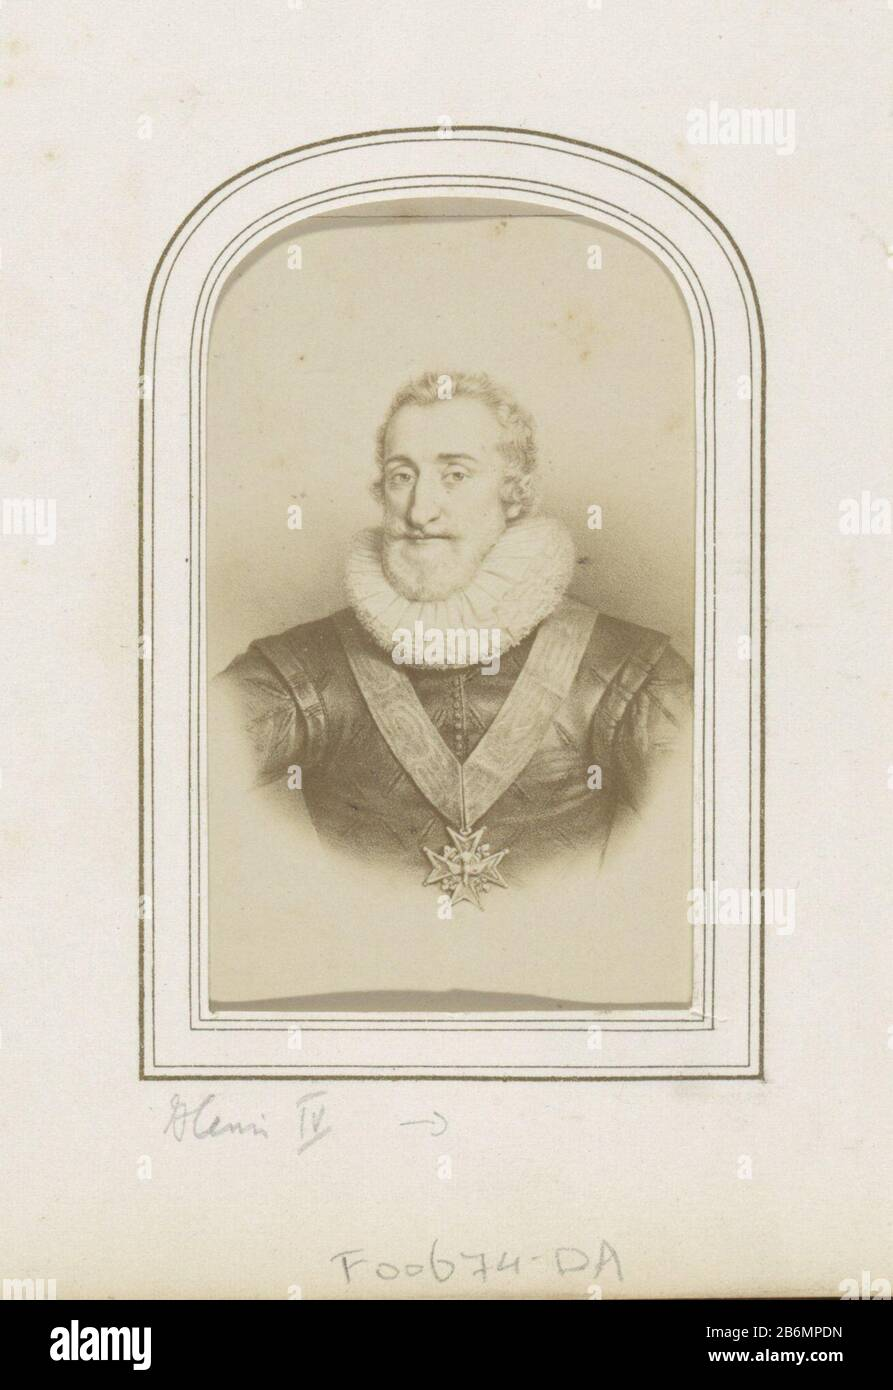 Henri Iv Date High Resolution Stock Photography And Images Alamy